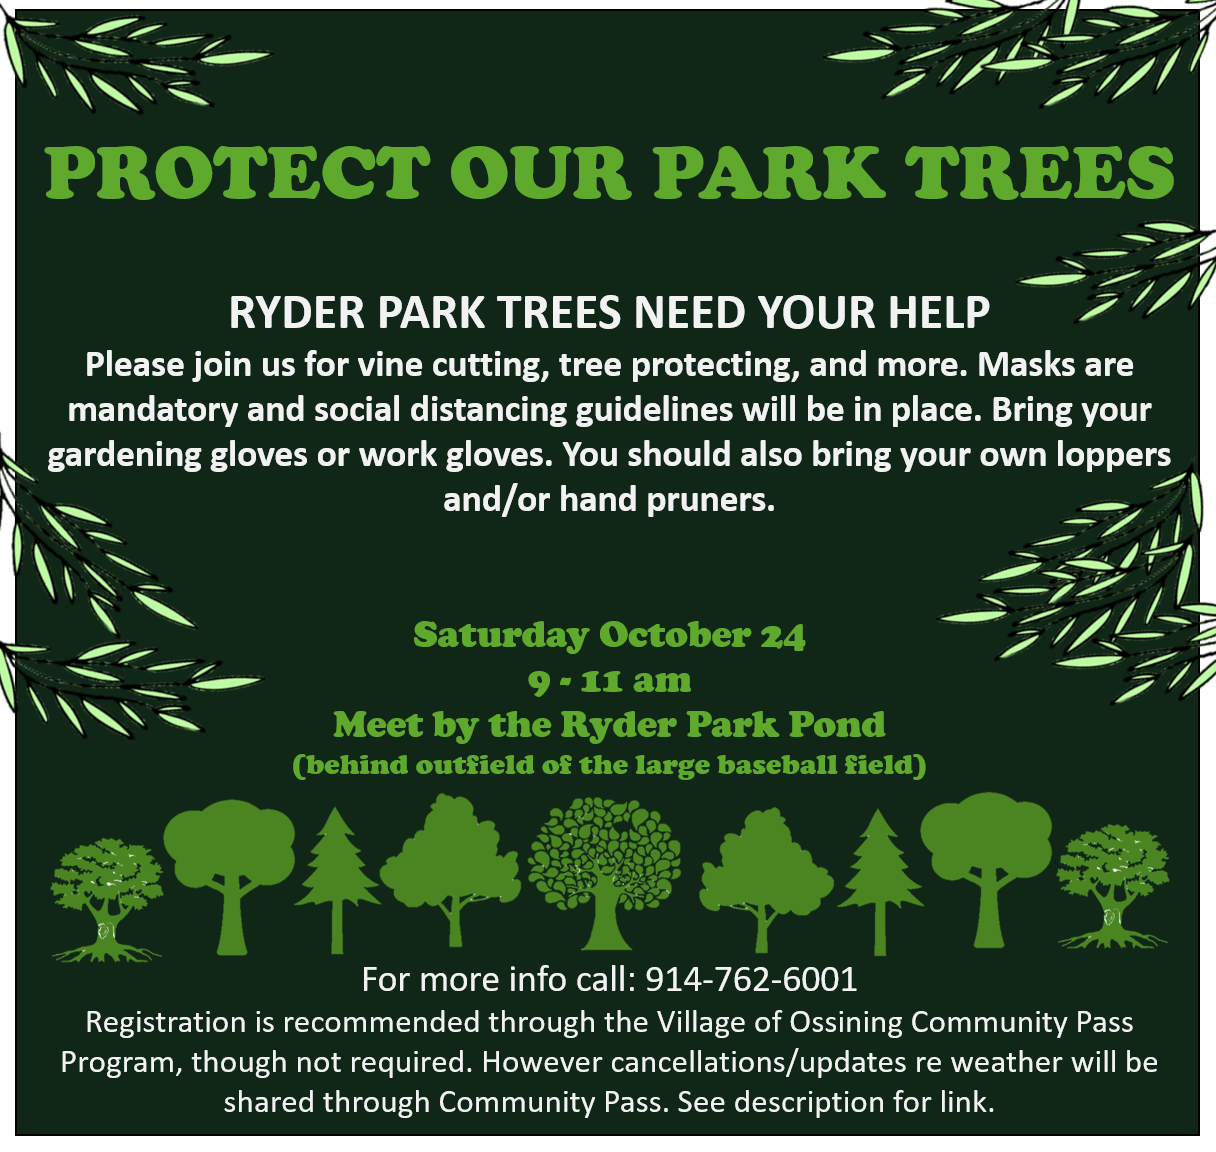 Protect our Park Trees Social Media